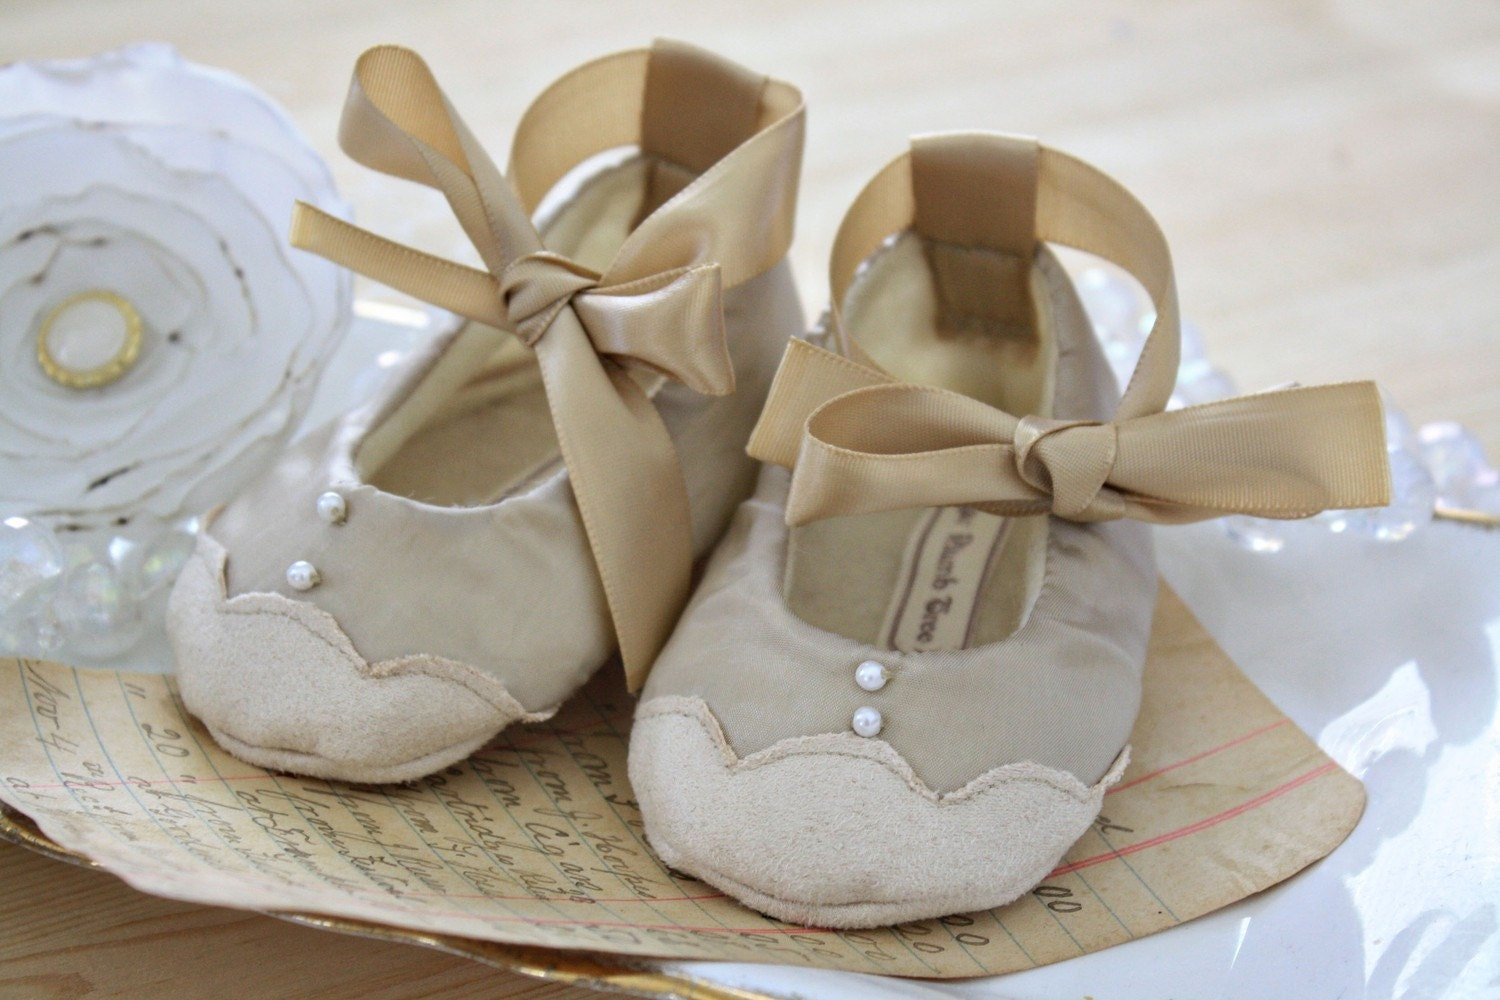 Antonia baby booties/shoes